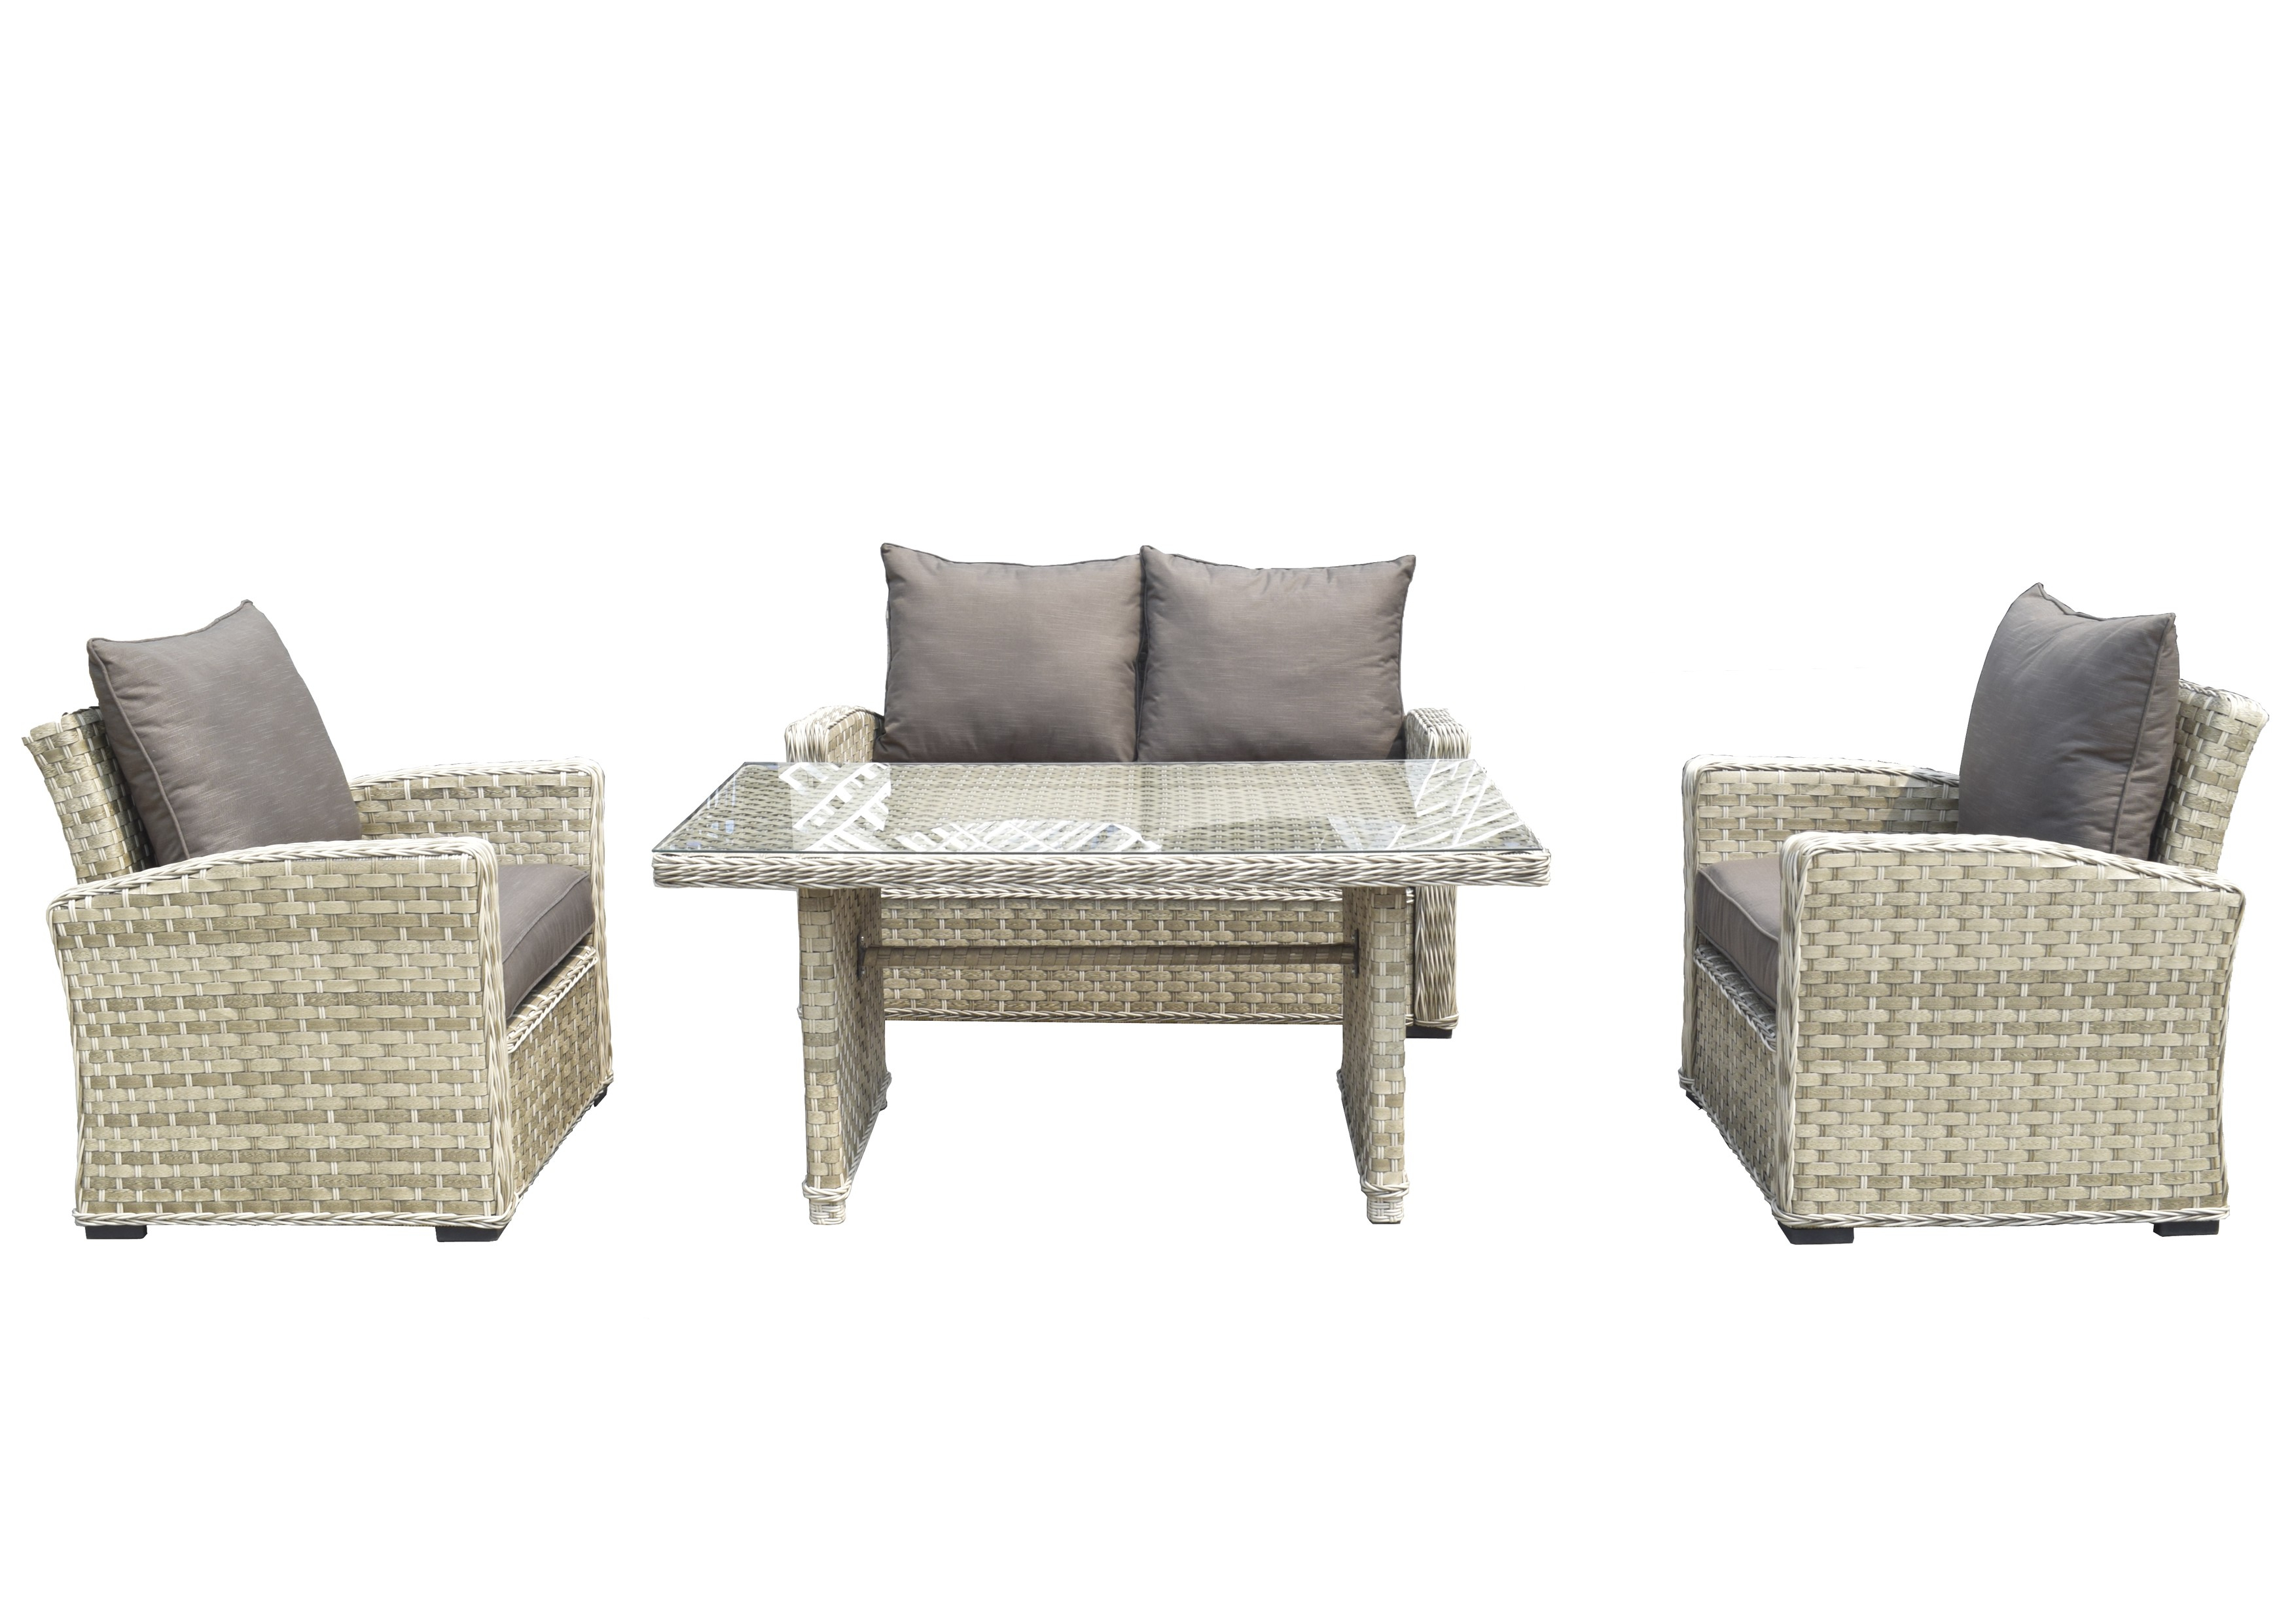 Furniture For Modern Living – Furniture For Modern Living Throughout Grace Sofa Chairs (View 15 of 25)